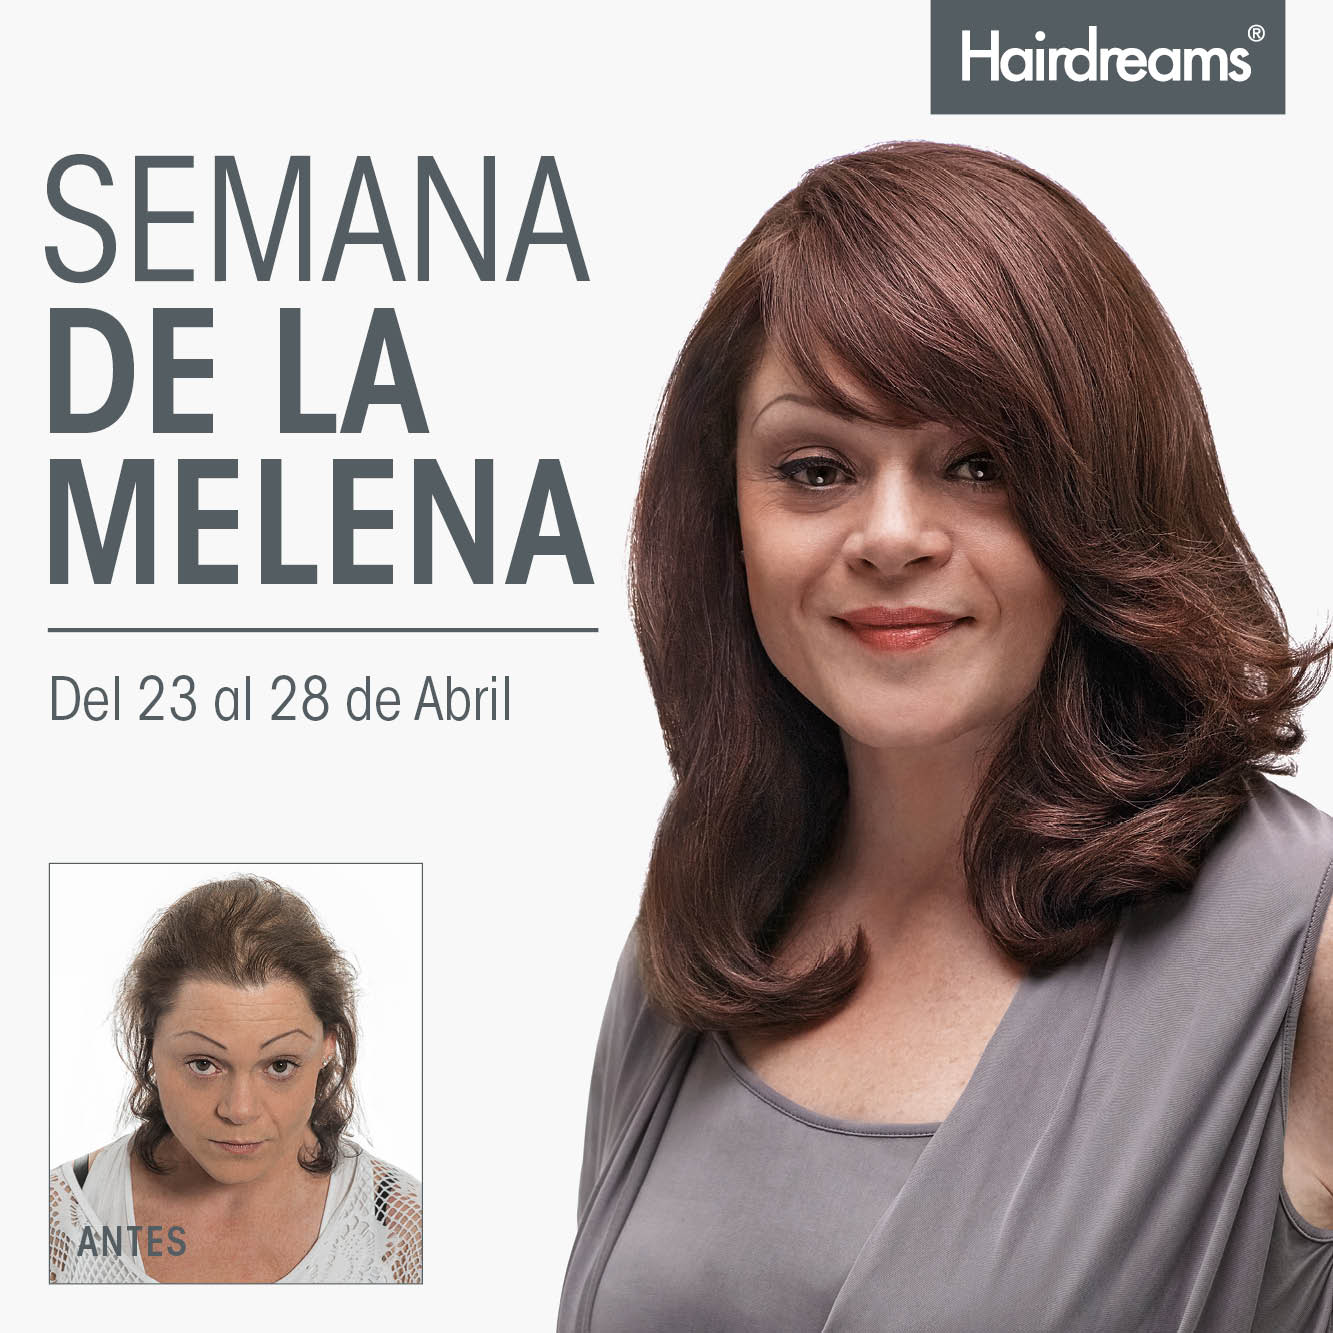 Semana de la melena Hairdreams Microlinea 2018